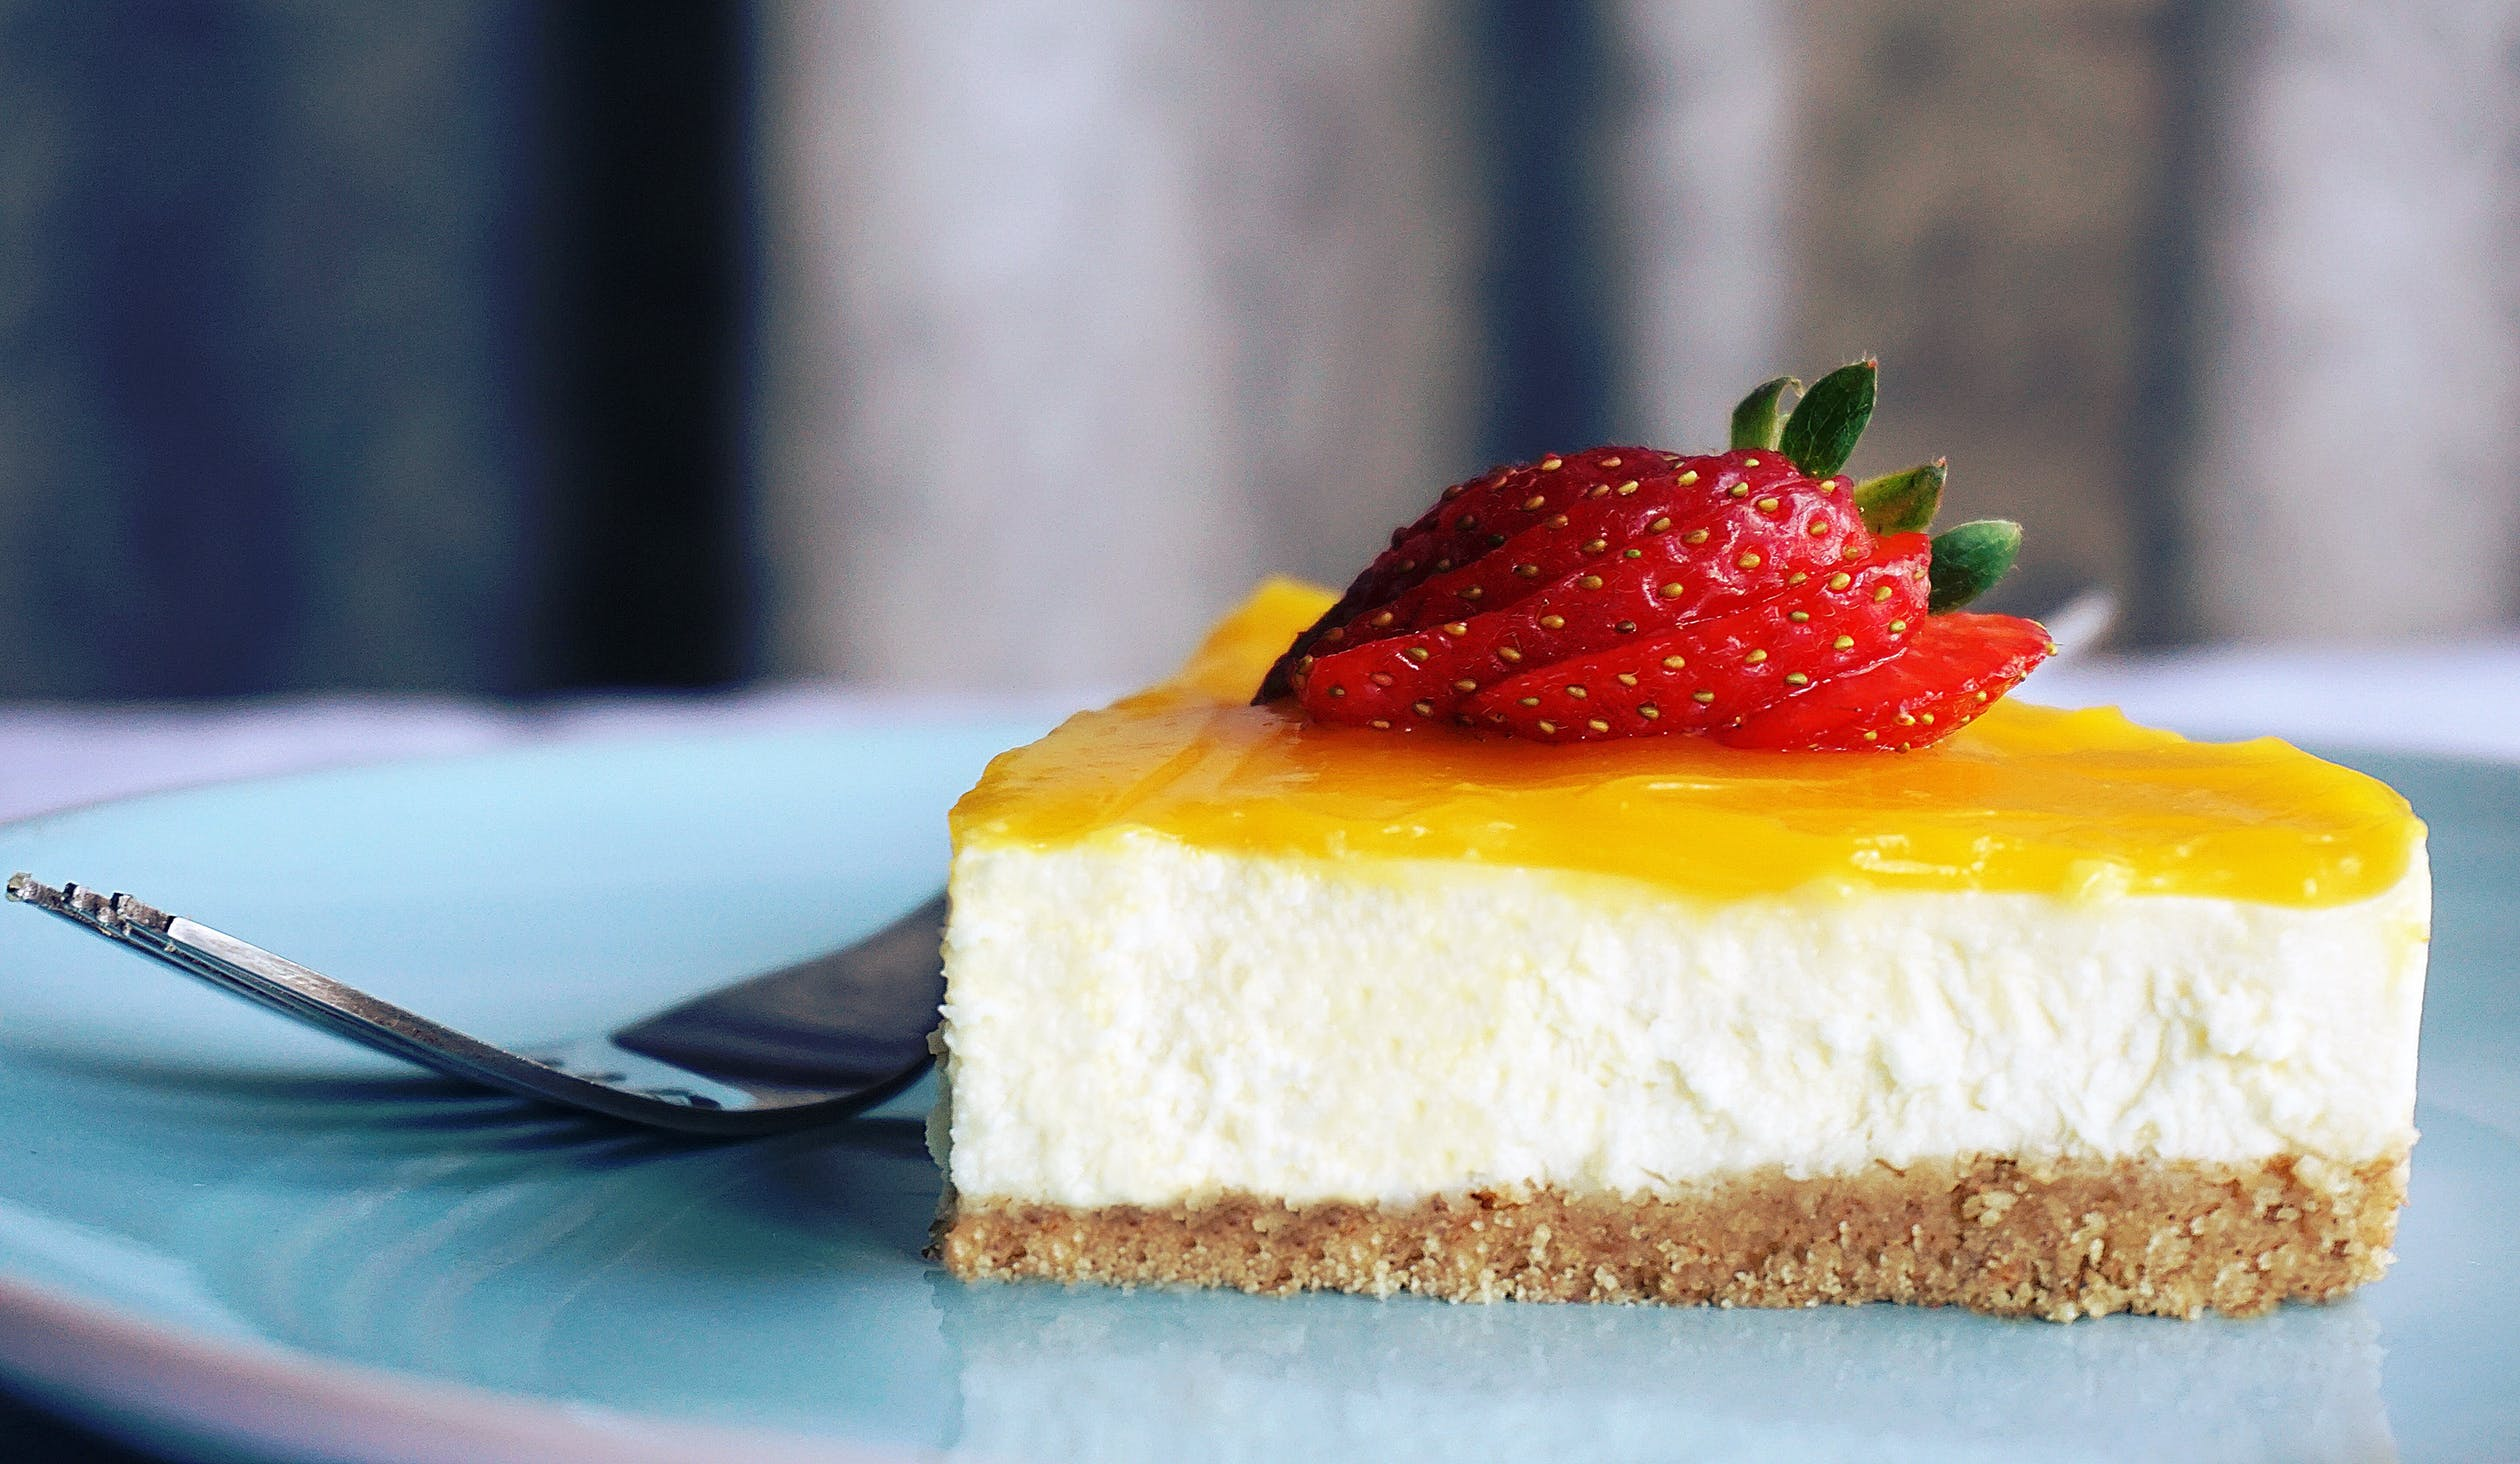 https://www.pexels.com/photo/cheese-cake-with-strawberry-fruit-1098592/